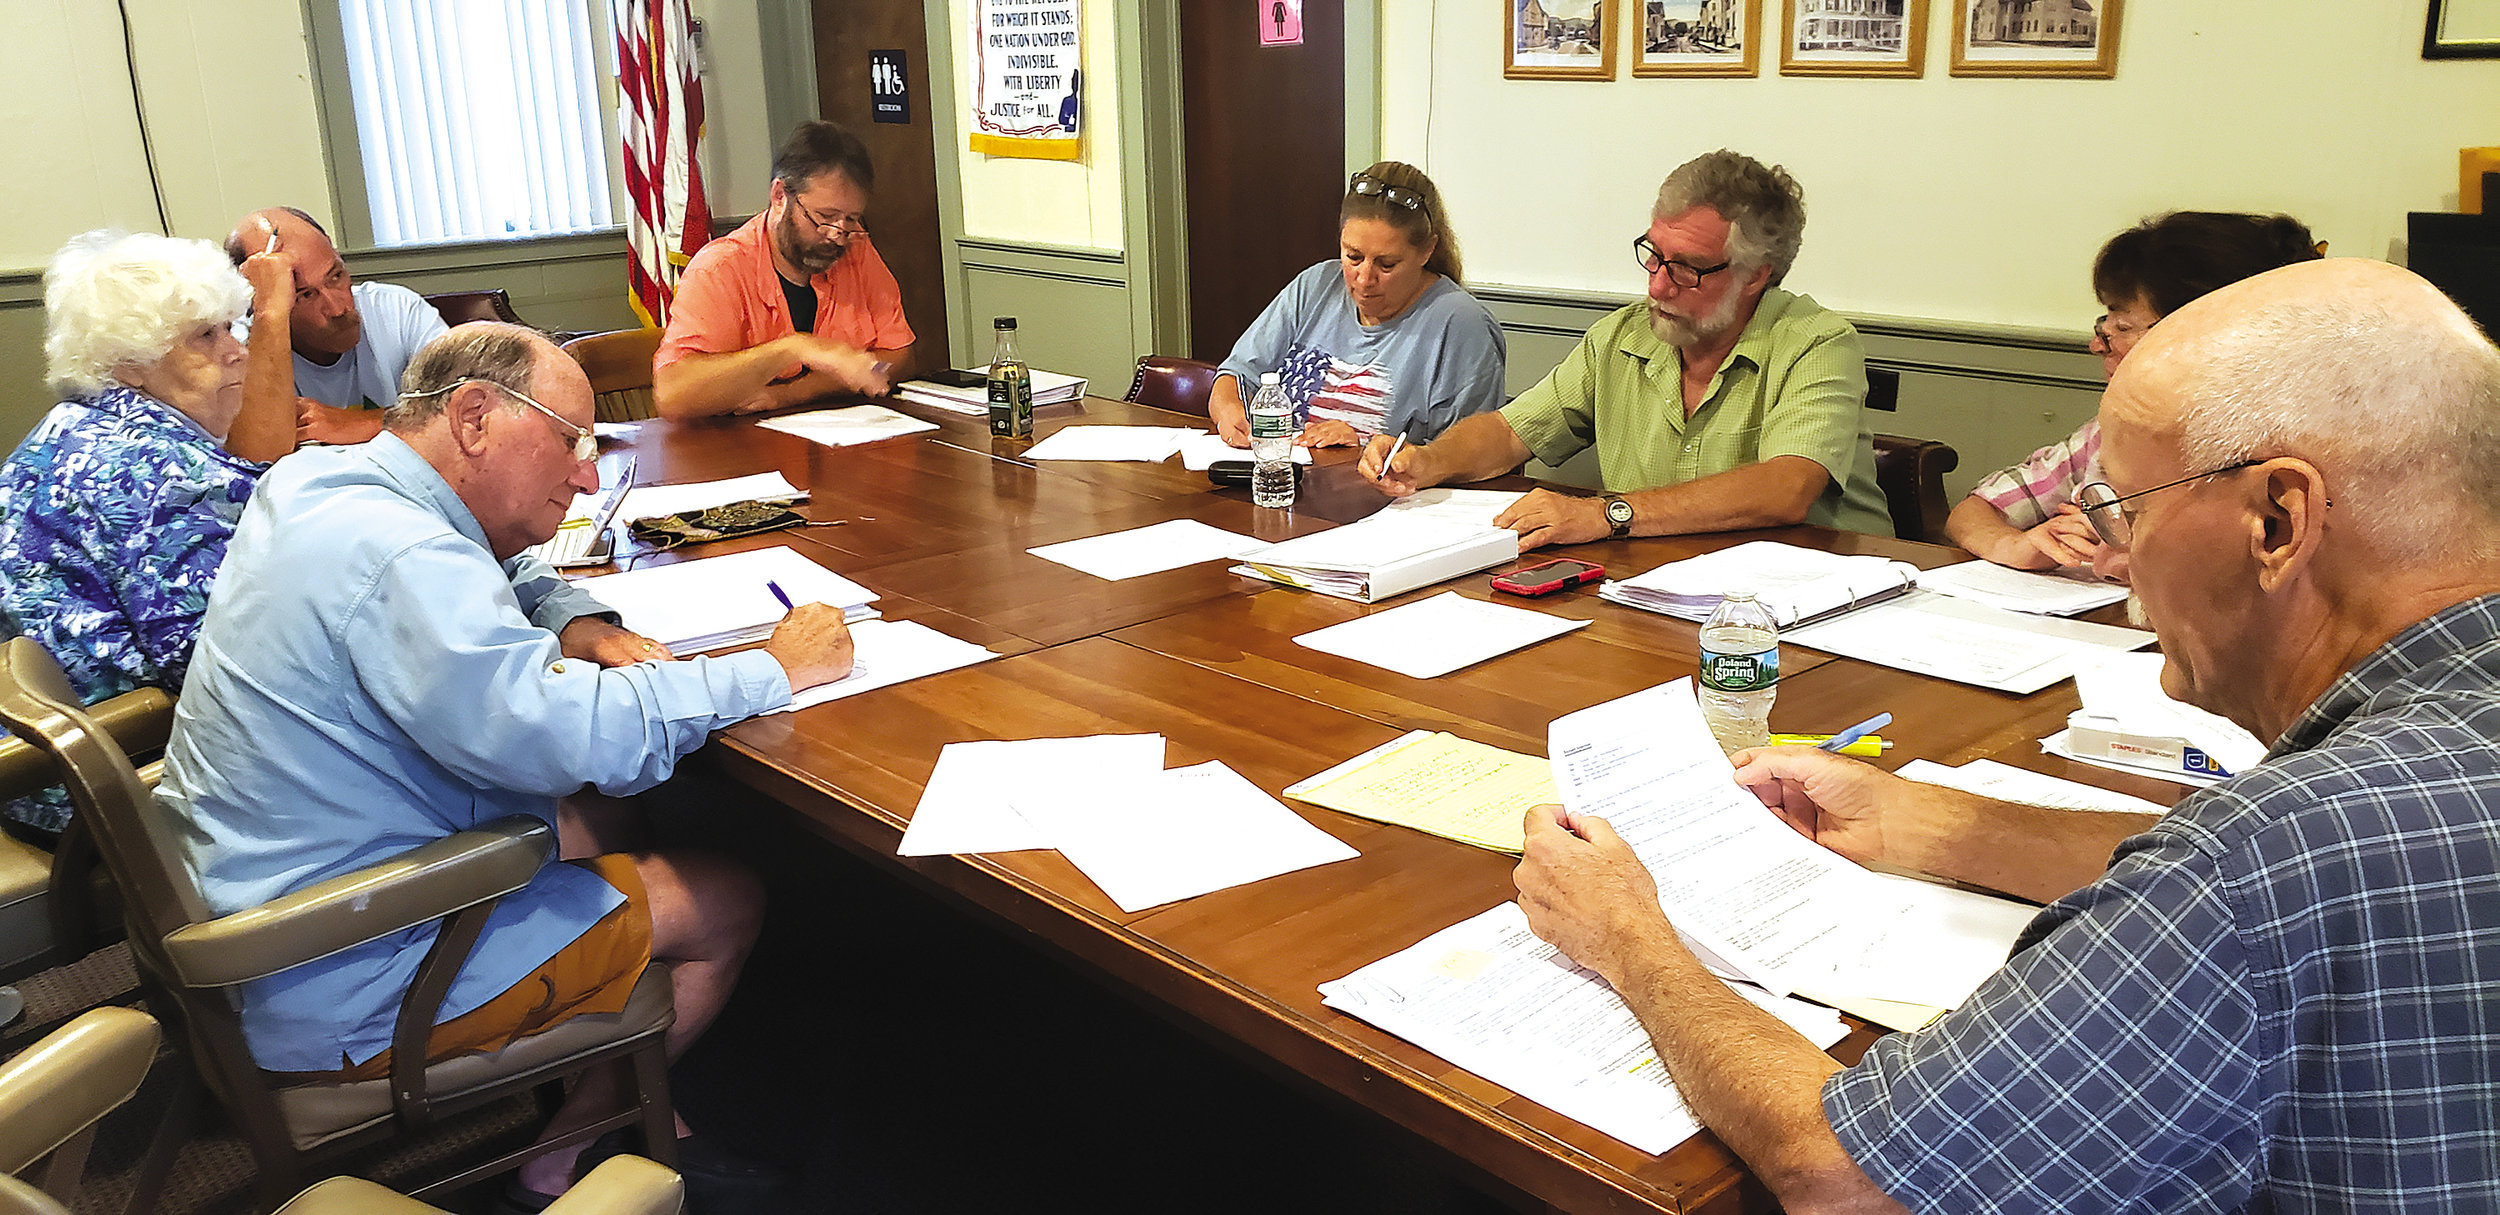 10-YEAR VISION : The Town of Rockland Comprehensive Plan Committee discusses the plan at a meeting in Town Hall in Livingston Manor on Aug. 14. The public is invited to comment on the plan at a 7 p.m. meeting on Sept. 18, also in Town Hall..  Amy Hines photo